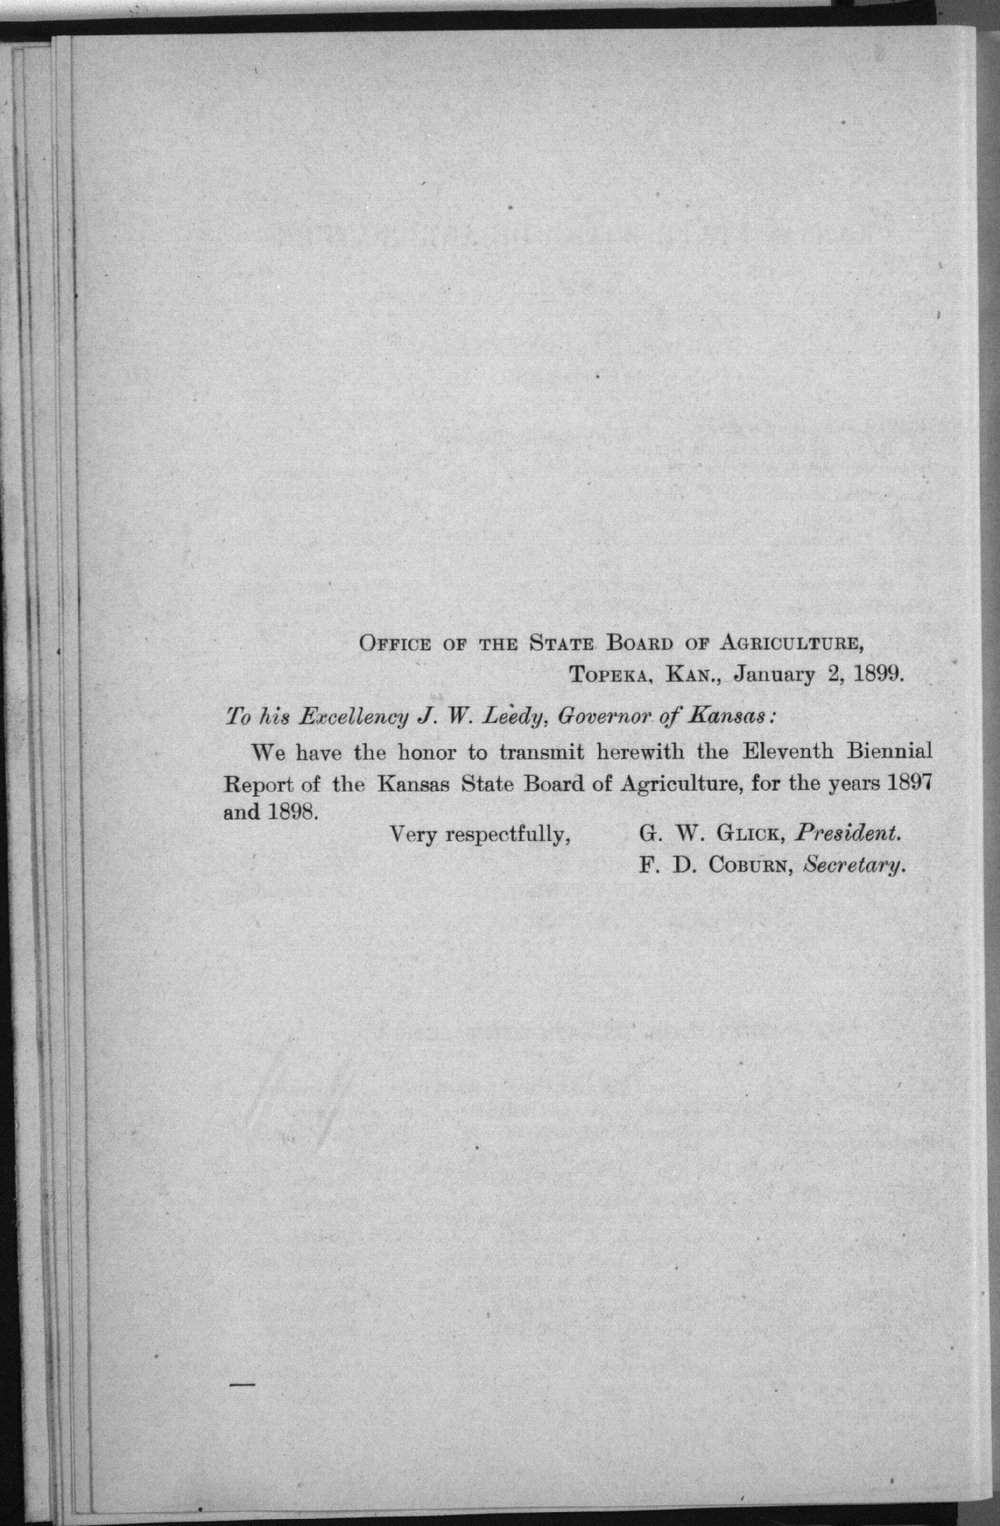 Eleventh biennial report of the Kansas State Board of Agriculture, 1897-98 - Letter of Transmittal